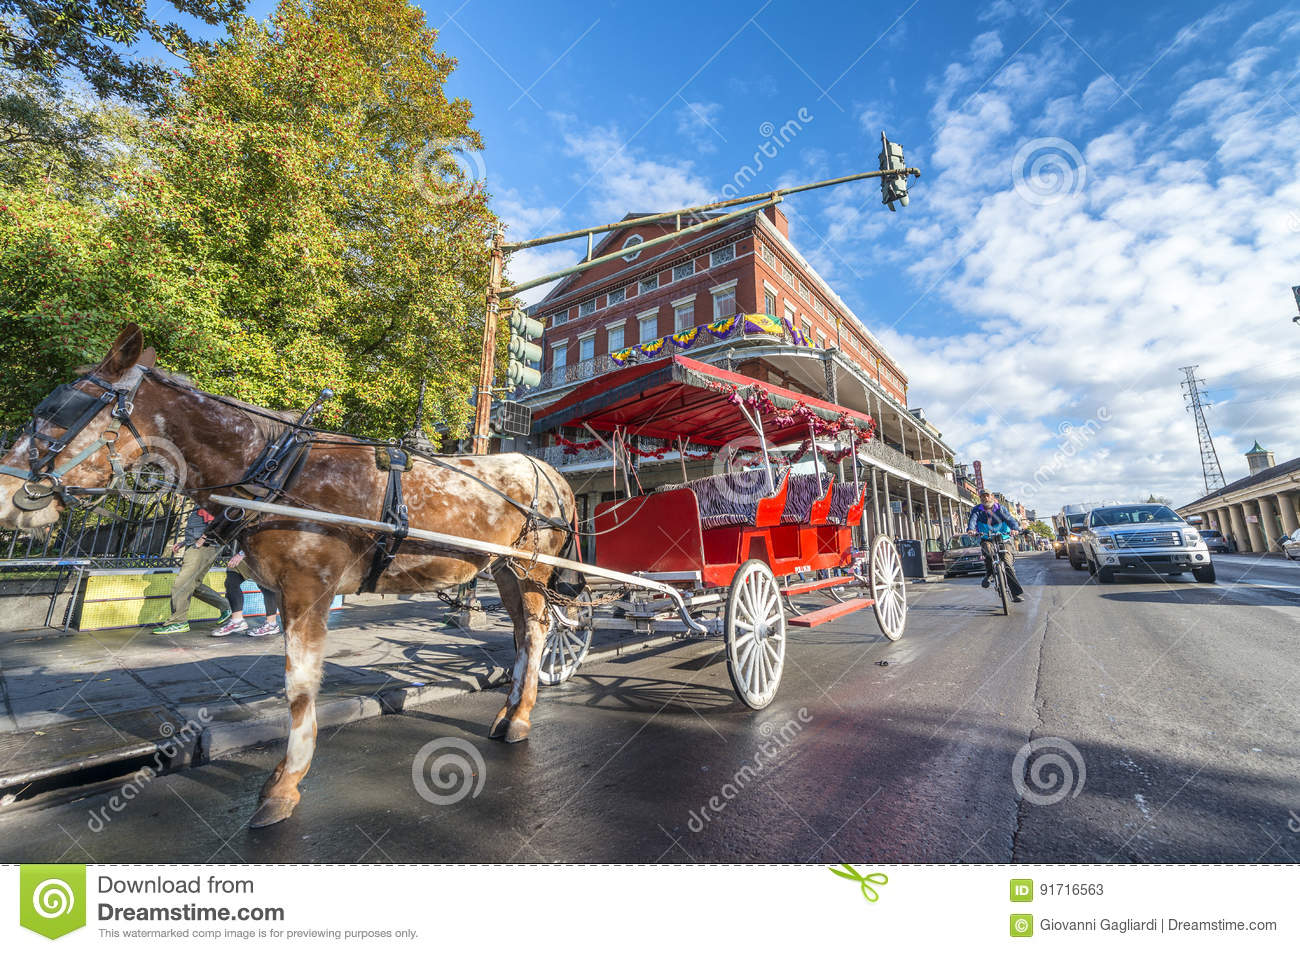 NEW ORLEANS, USA - FEBRUARY 2016: Red horse carriage along Jacks